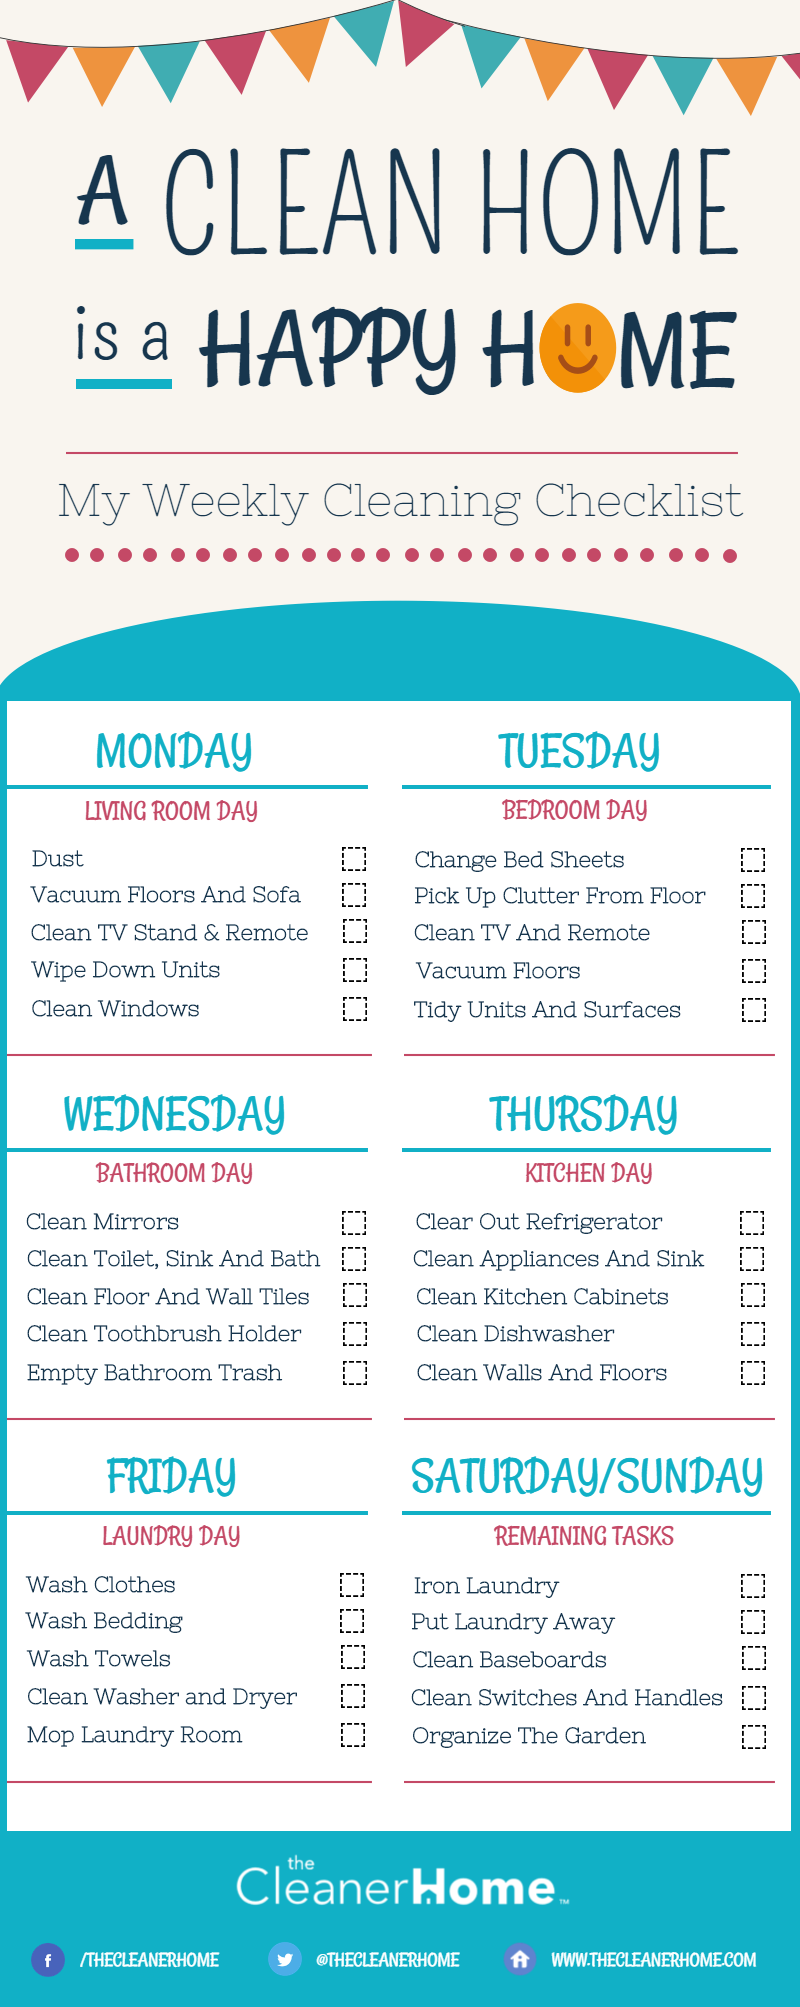 photo relating to Free Printable Cleaning Schedule referred to as Weekly Dwelling Cleansing Listing The Cleaner Residence